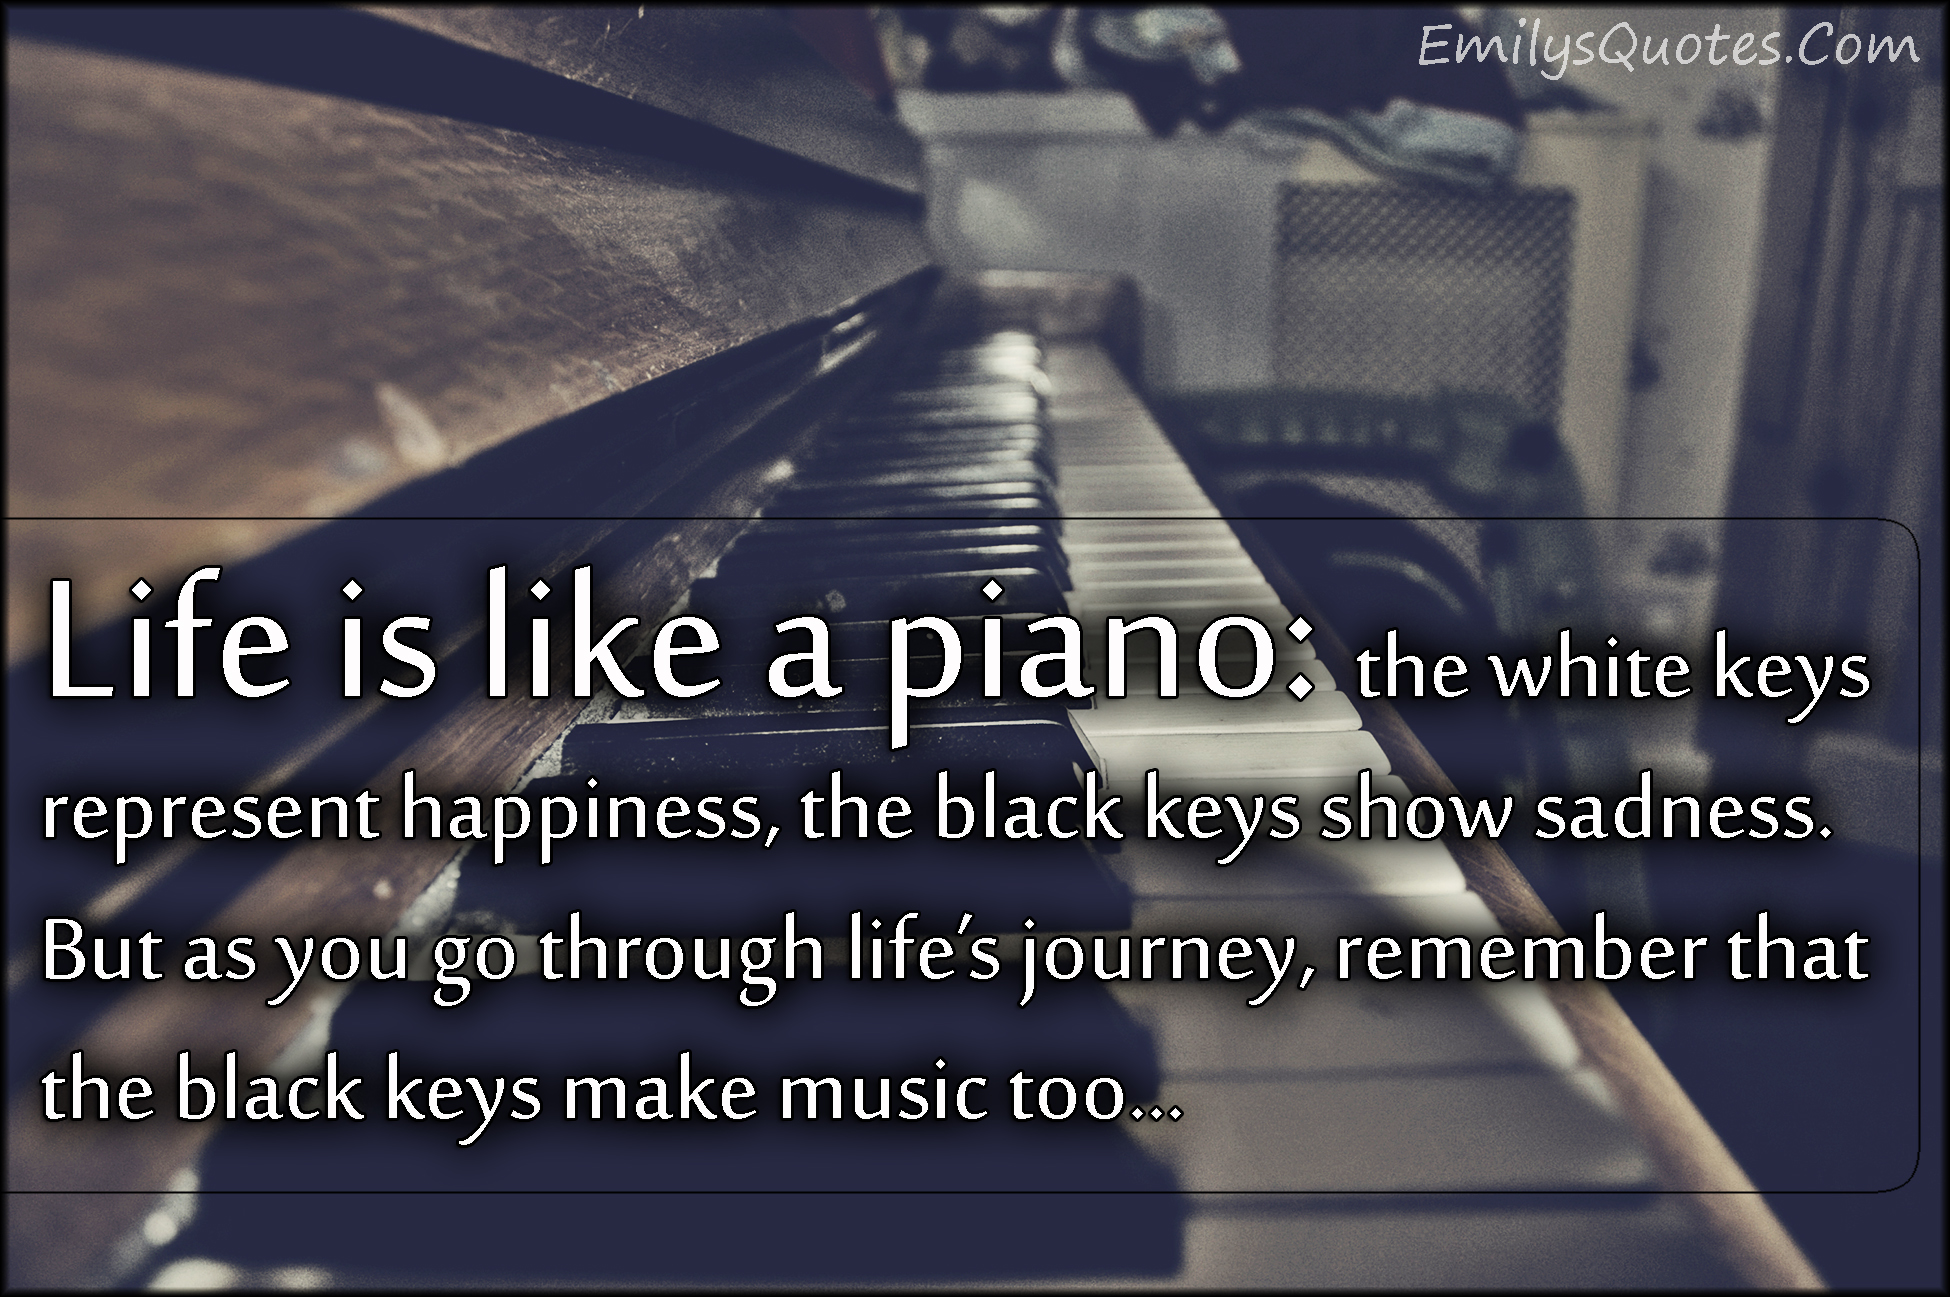 Wisdom Quotes About Life And Happiness Life Is Like A Piano The White Keys Represent Happiness The